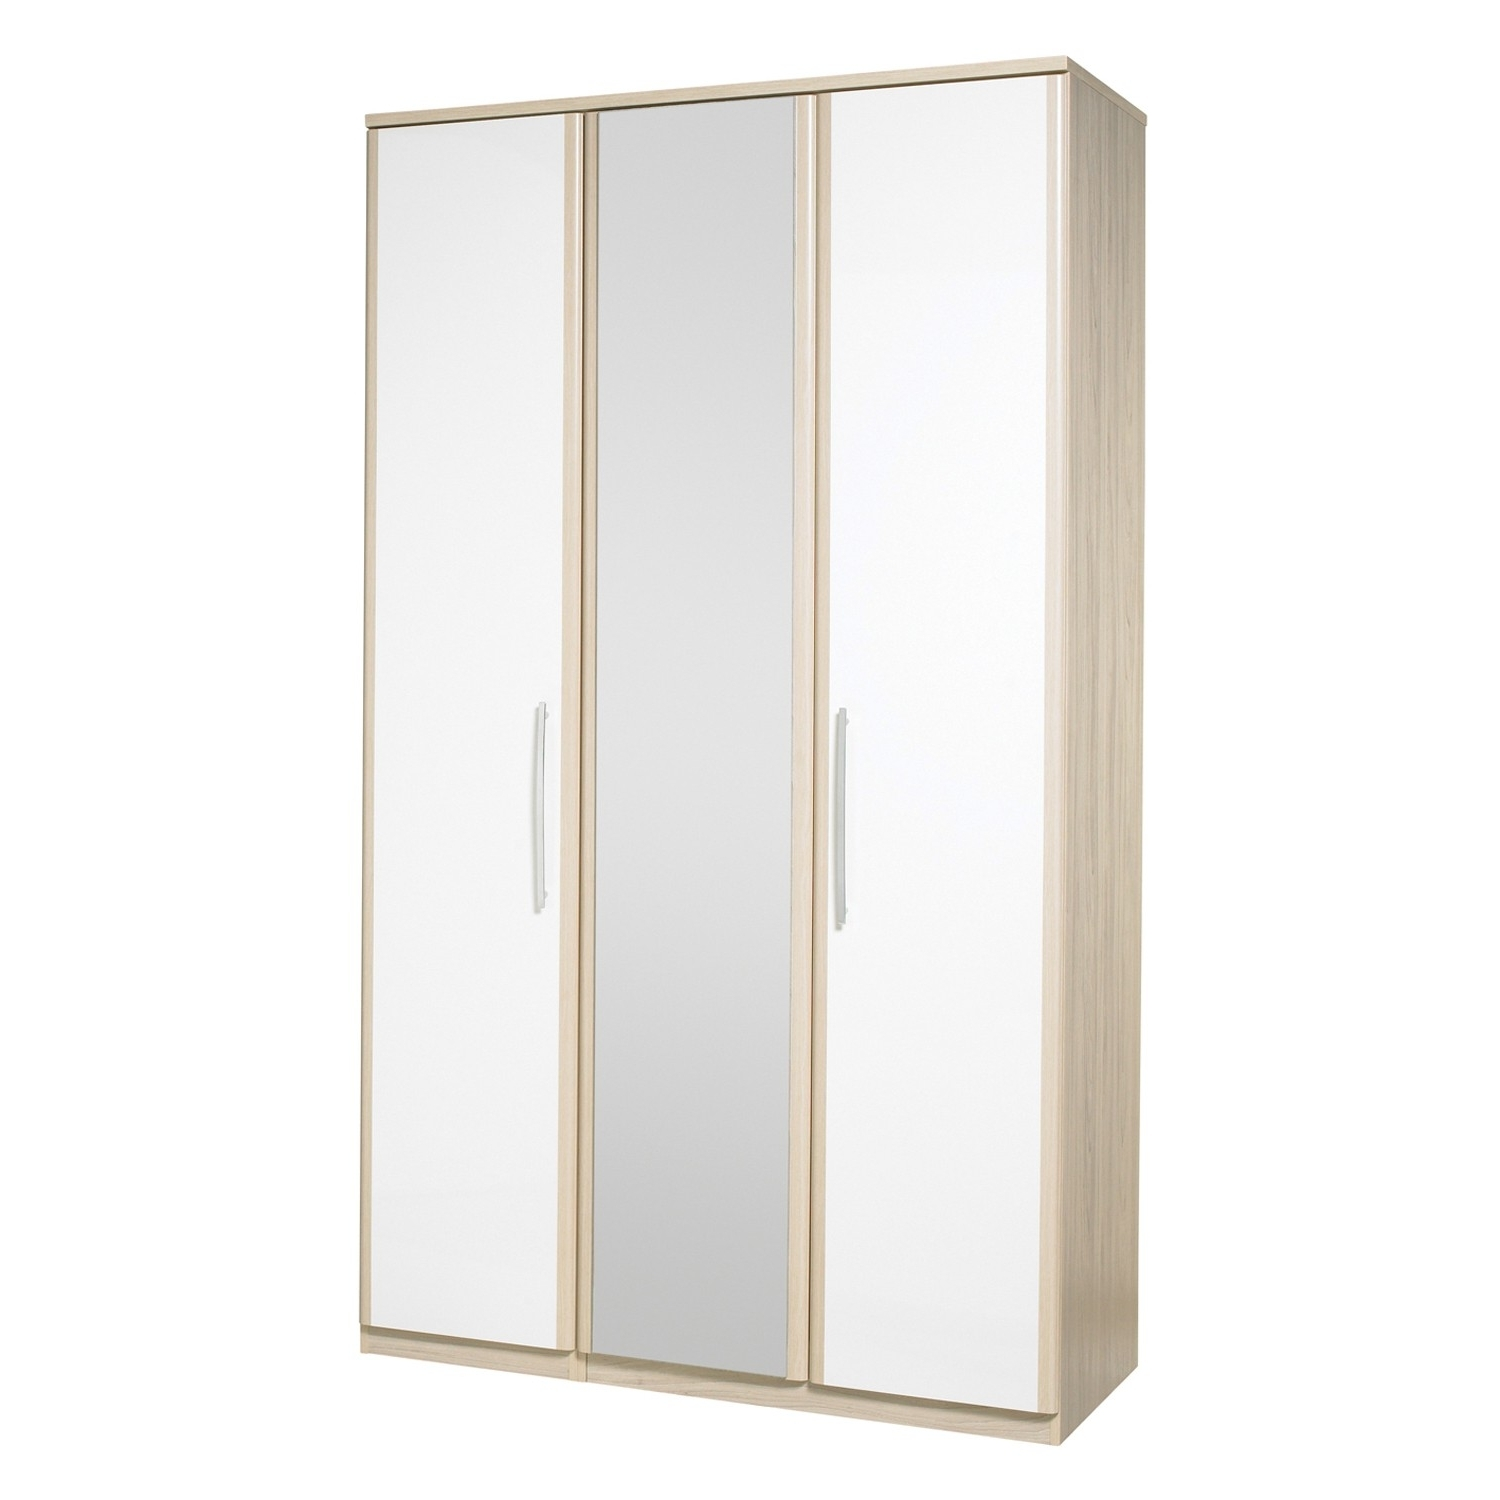 White 3 Door Wardrobes With Mirror Pertaining To Most Up To Date White 3 Door Wardrobe With Drawers And Mirror Armoire Corner (View 12 of 15)